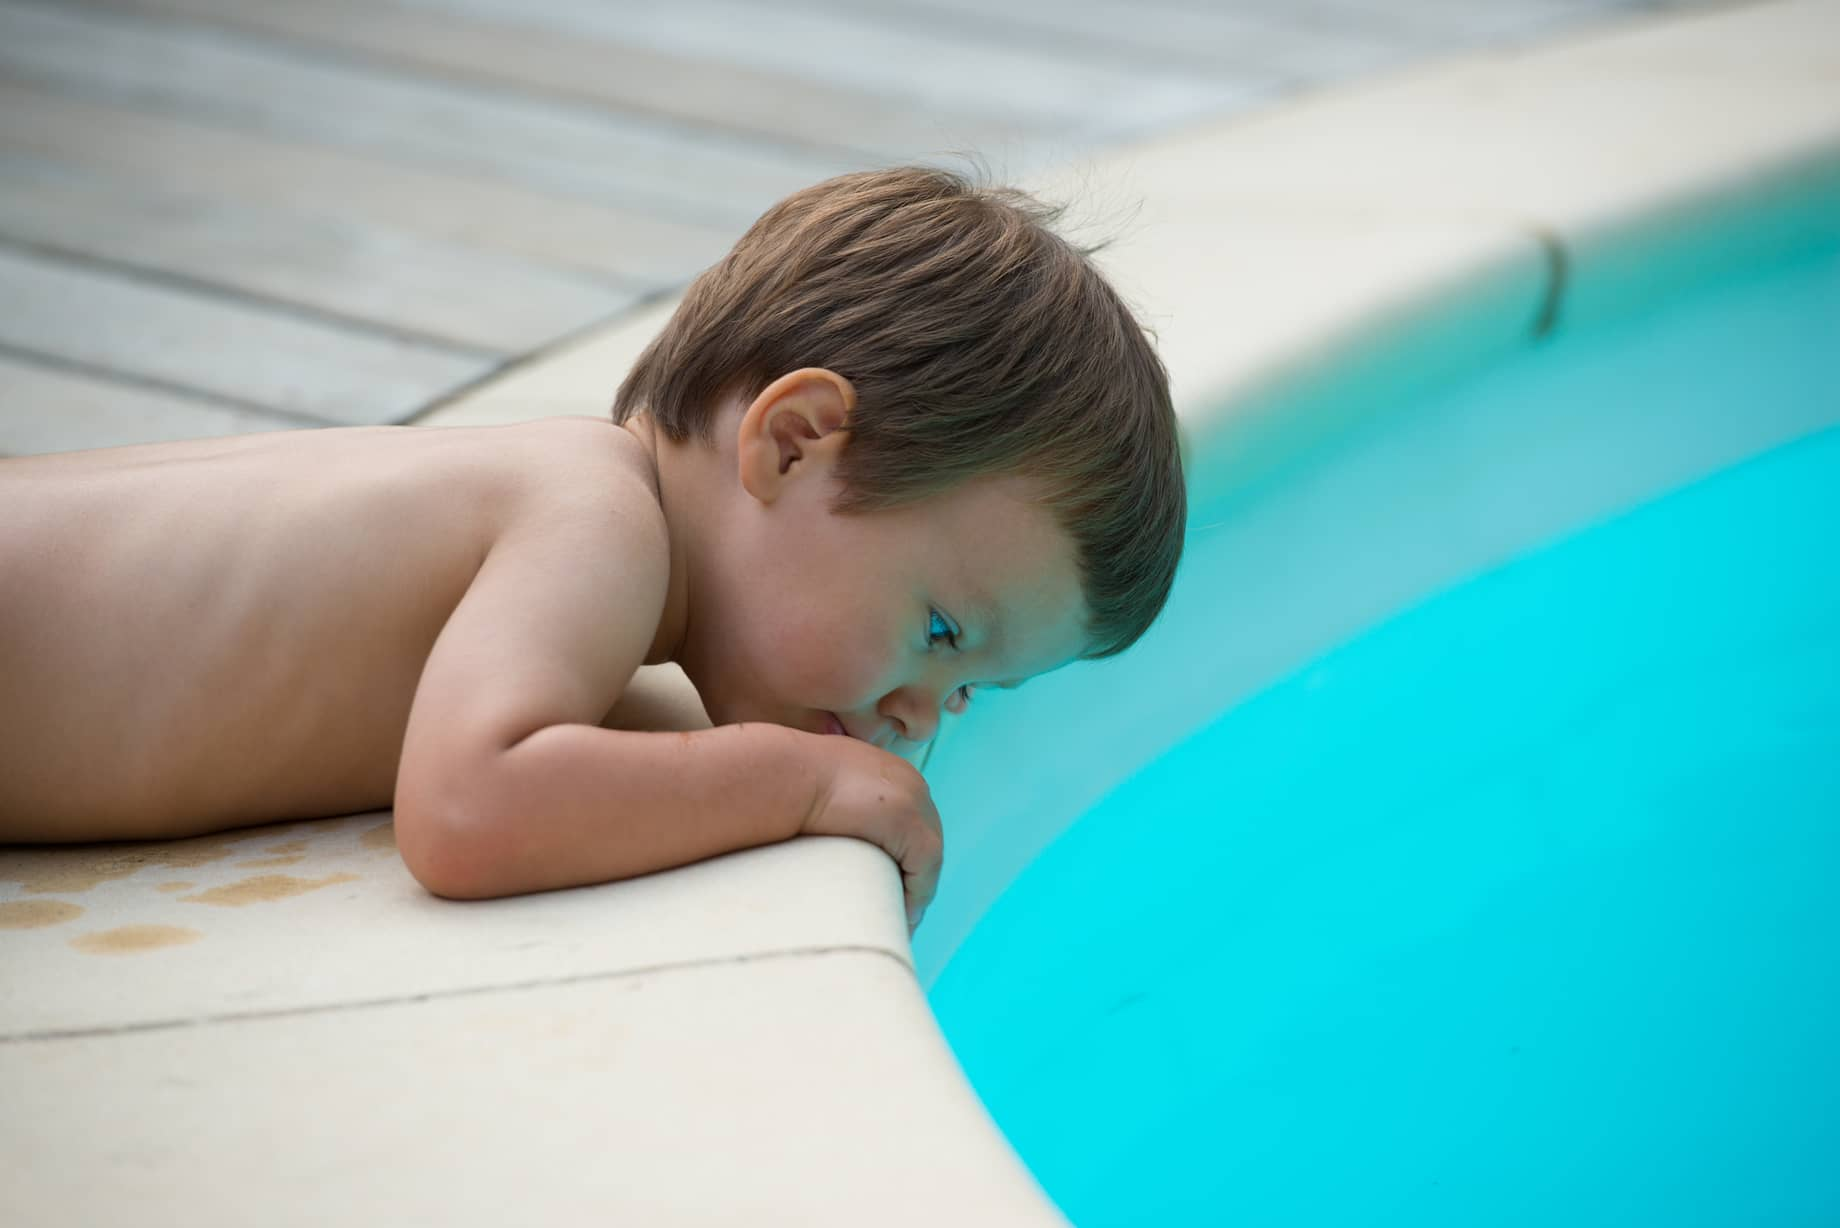 Pool Safety: Anti-Entrapment Pool Drains - Child leaning over pool